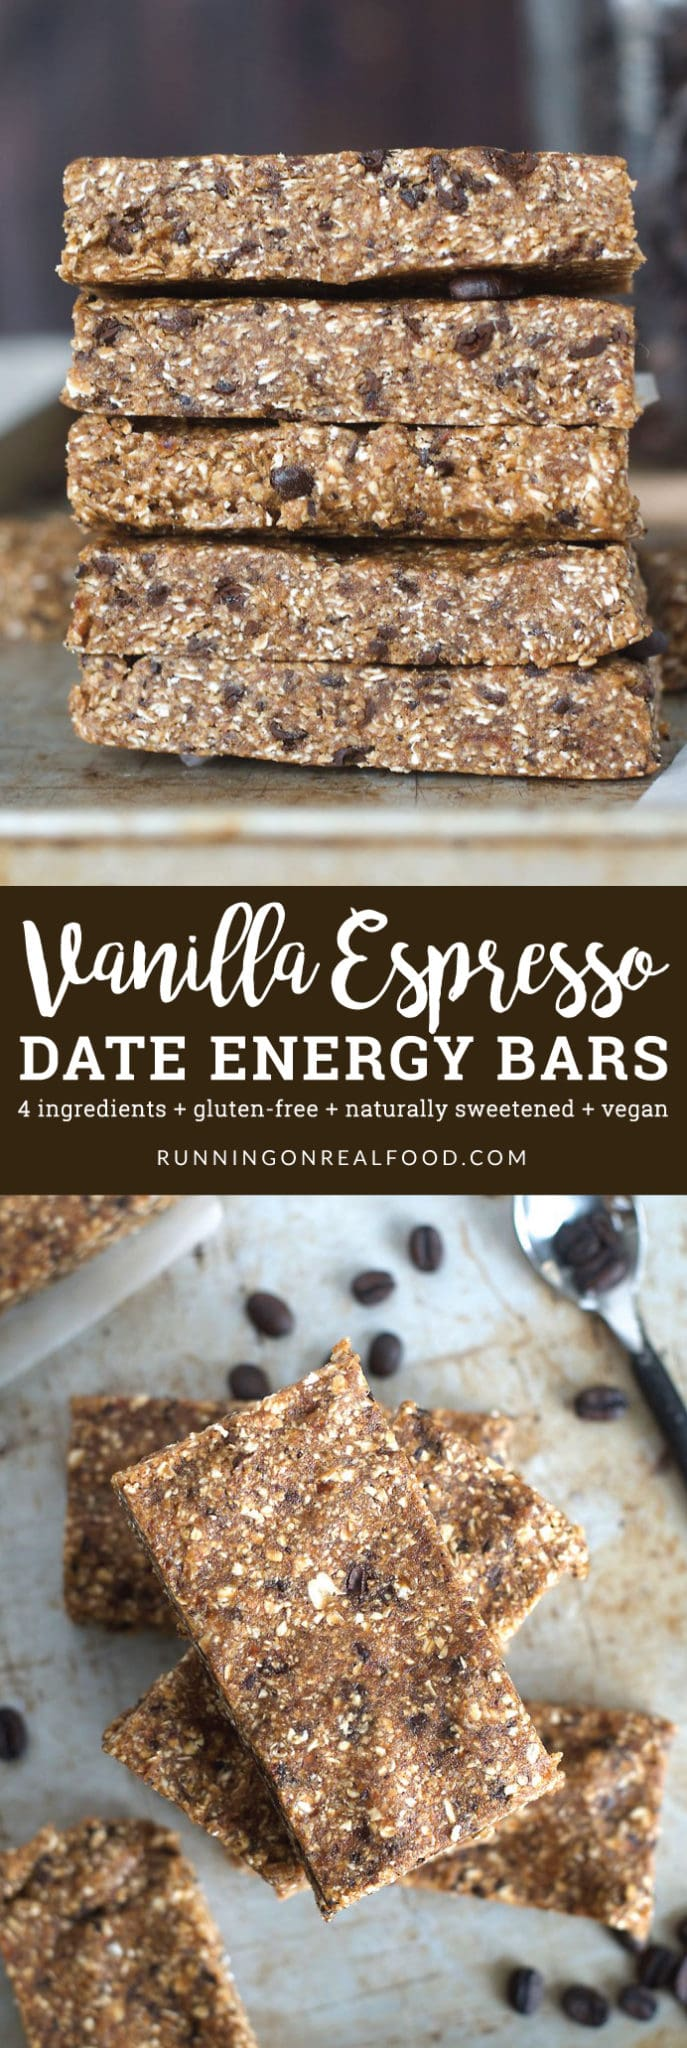 No-Bake Vanilla Espresso Date Energy Bars. The name says it all. Pure vanilla, coffee beans, dates and oats is all you need to make these vanilla latte-inspired energy bars. They're no-bake, can be prepared in minutes and enjoyed as breakfast, a pre-workout snack, dessert or anytime you want a natural boost in energy.